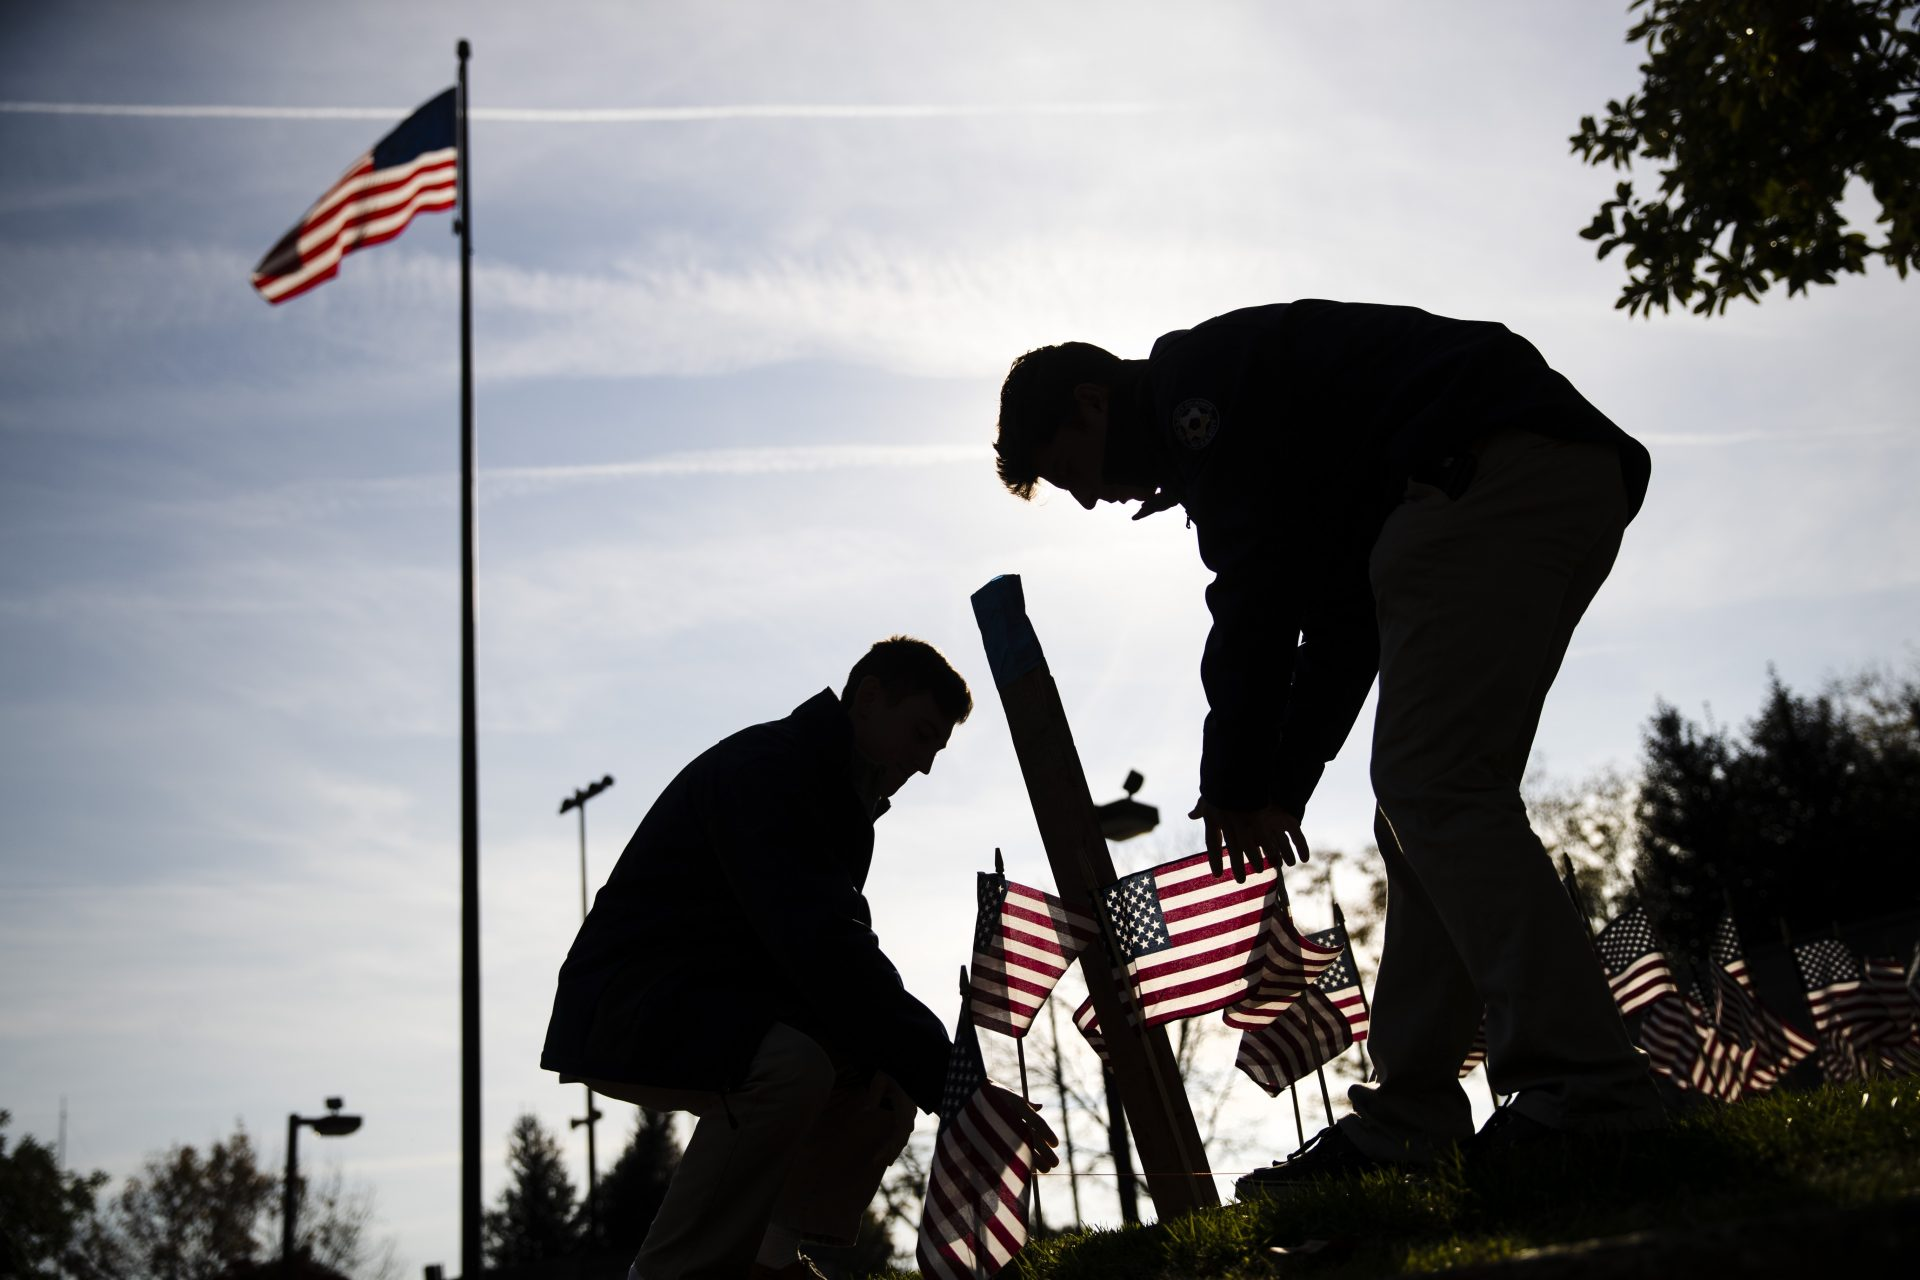 American flags are posted in the ground ahead of a Veterans Day ceremony at the Vietnam War Memorial in Philadelphia, Monday, Nov. 11, 2019.